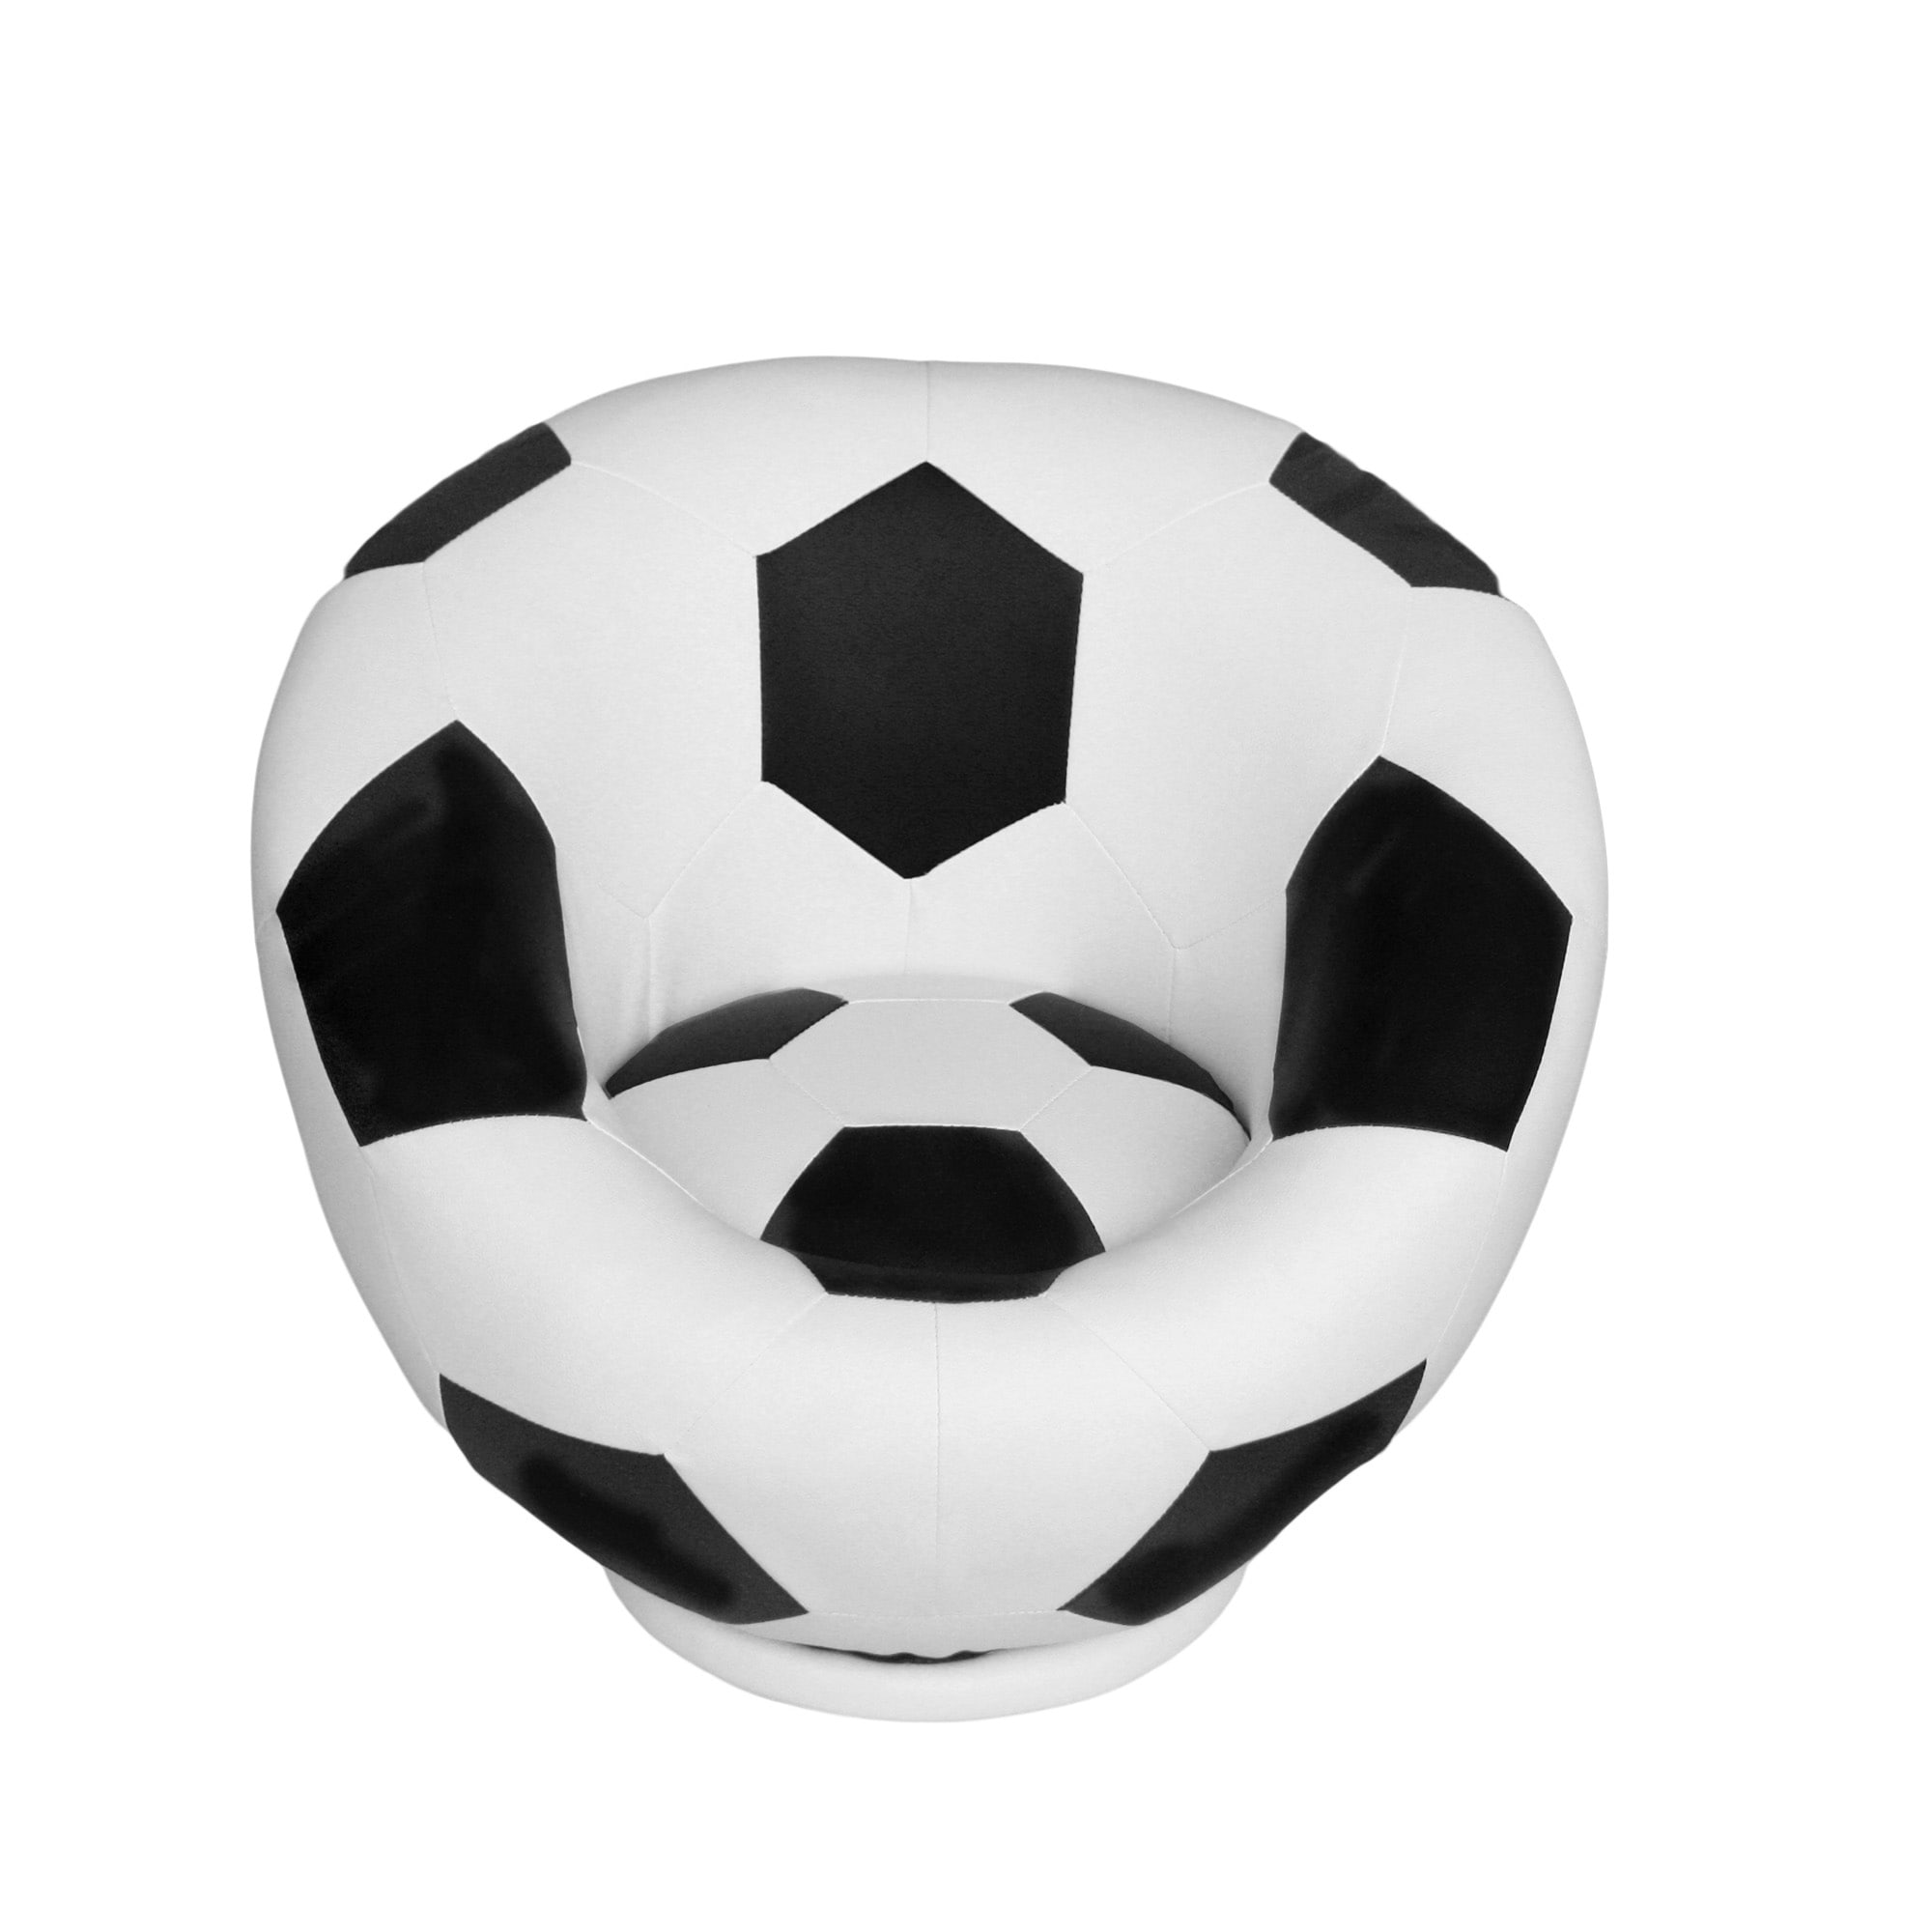 Kids Soccer Ball Chair Upholstered Foam Padded Seat Swivel Base White Finish